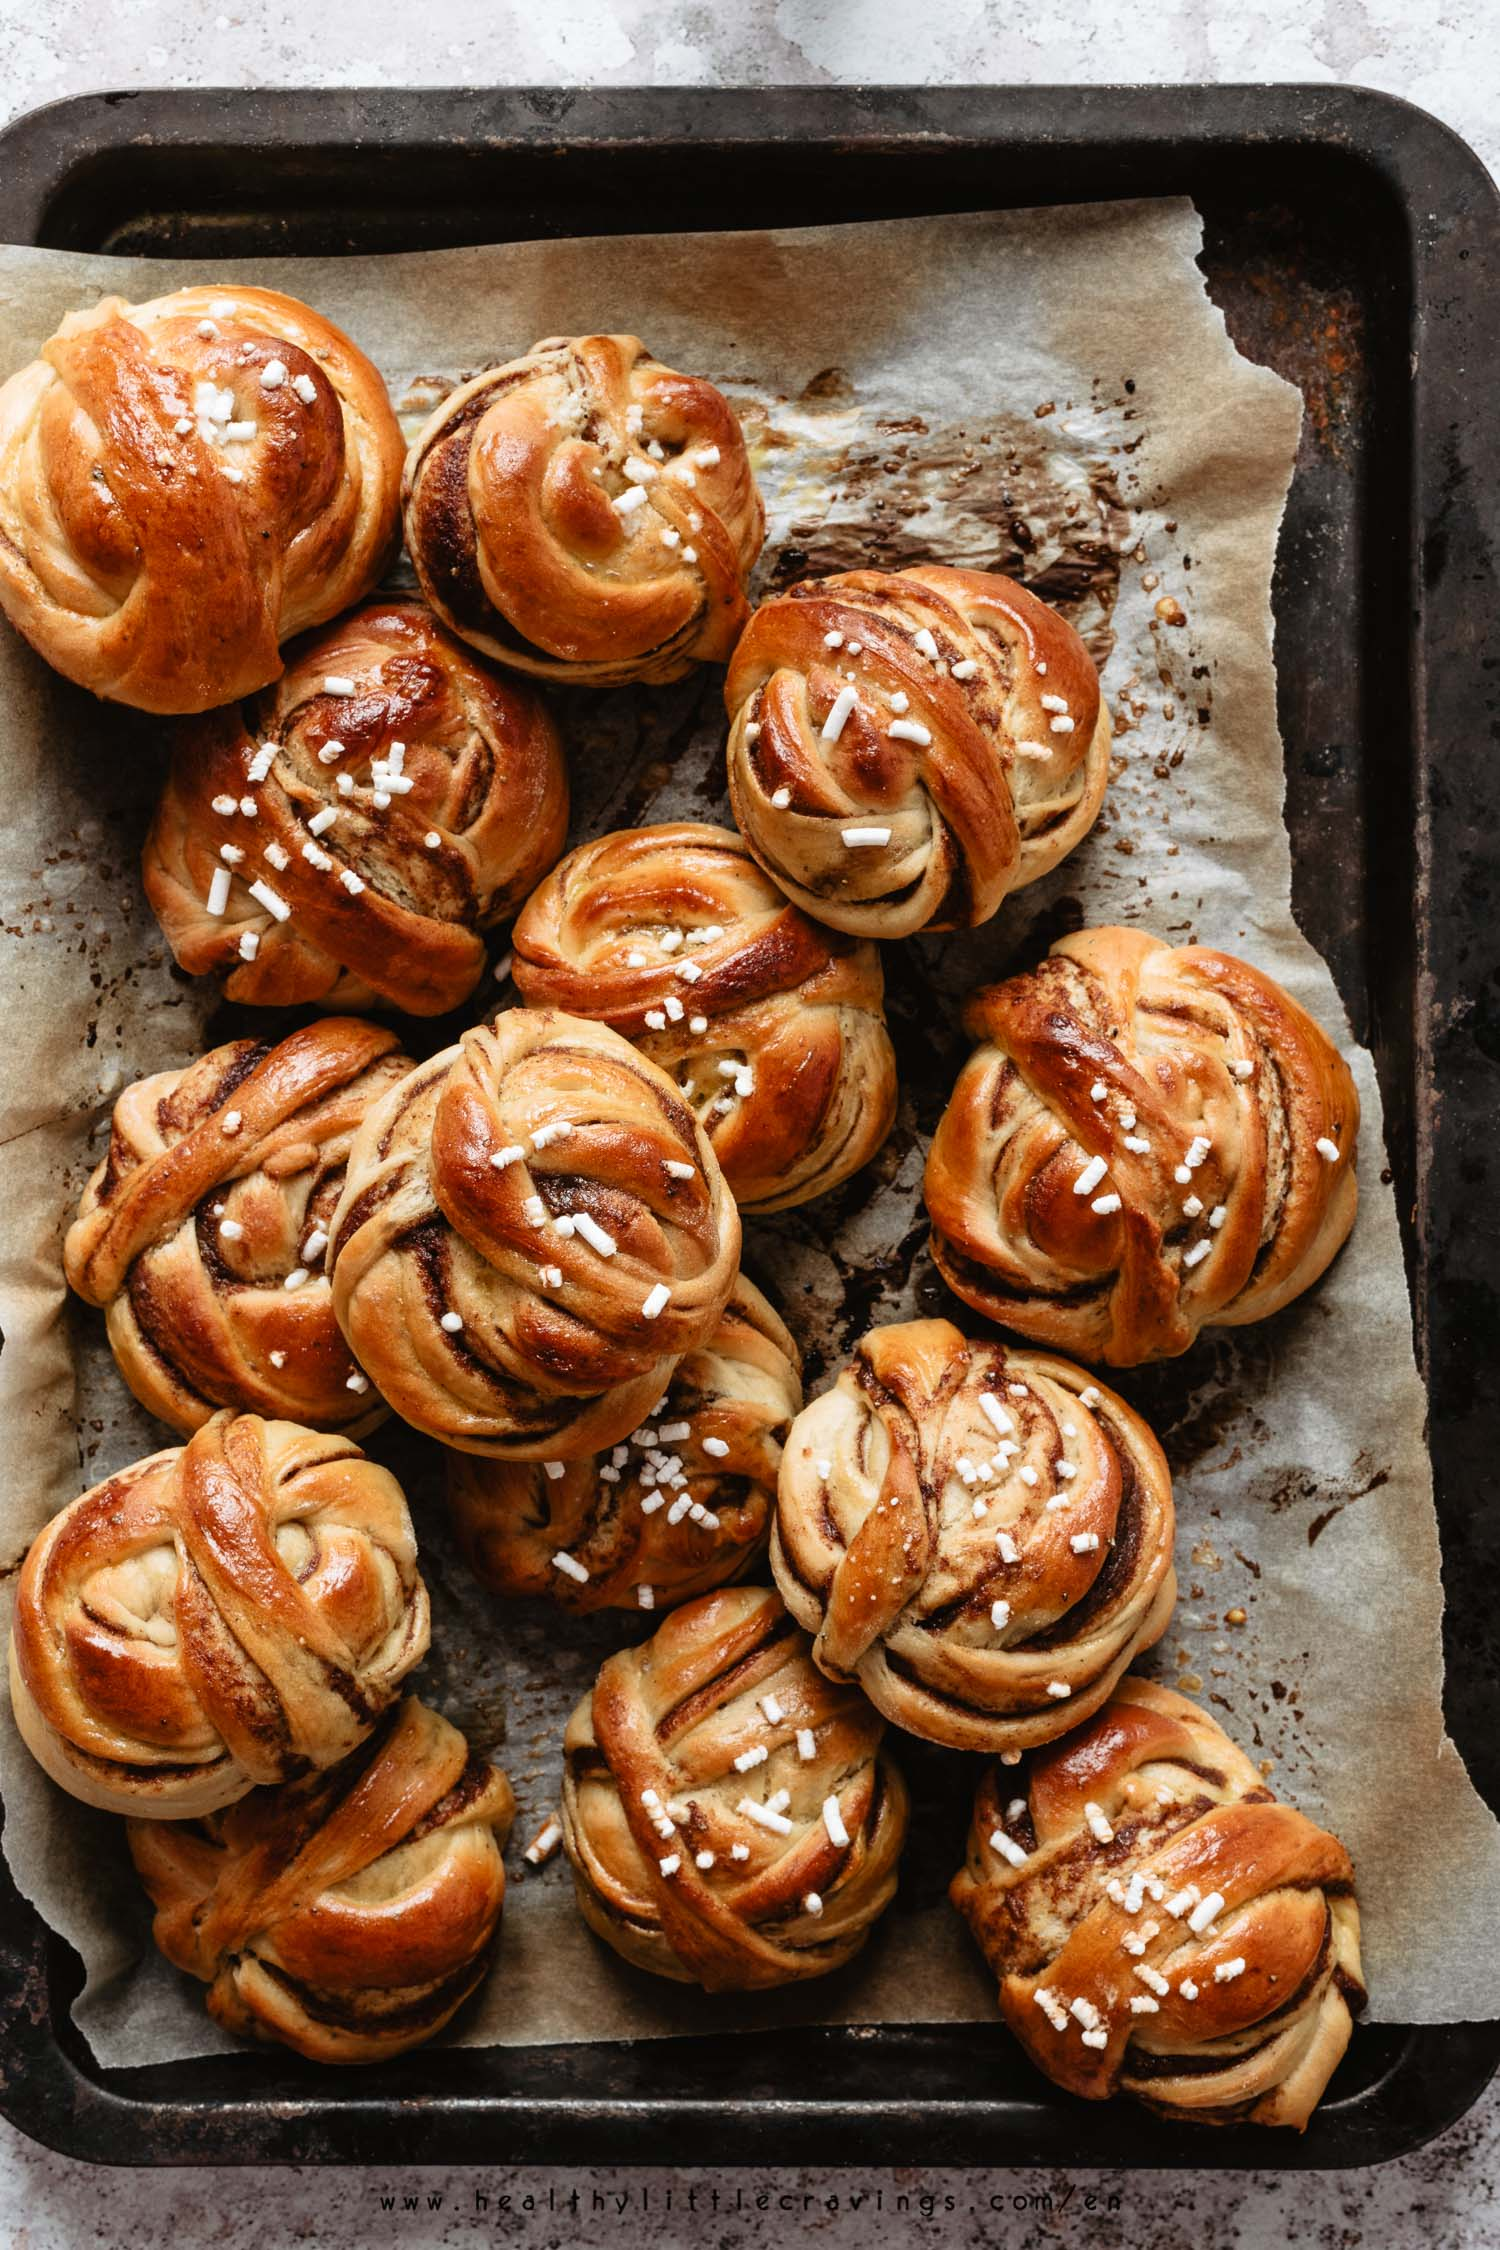 Swedish cardamom buns on parchment paper a baking tray